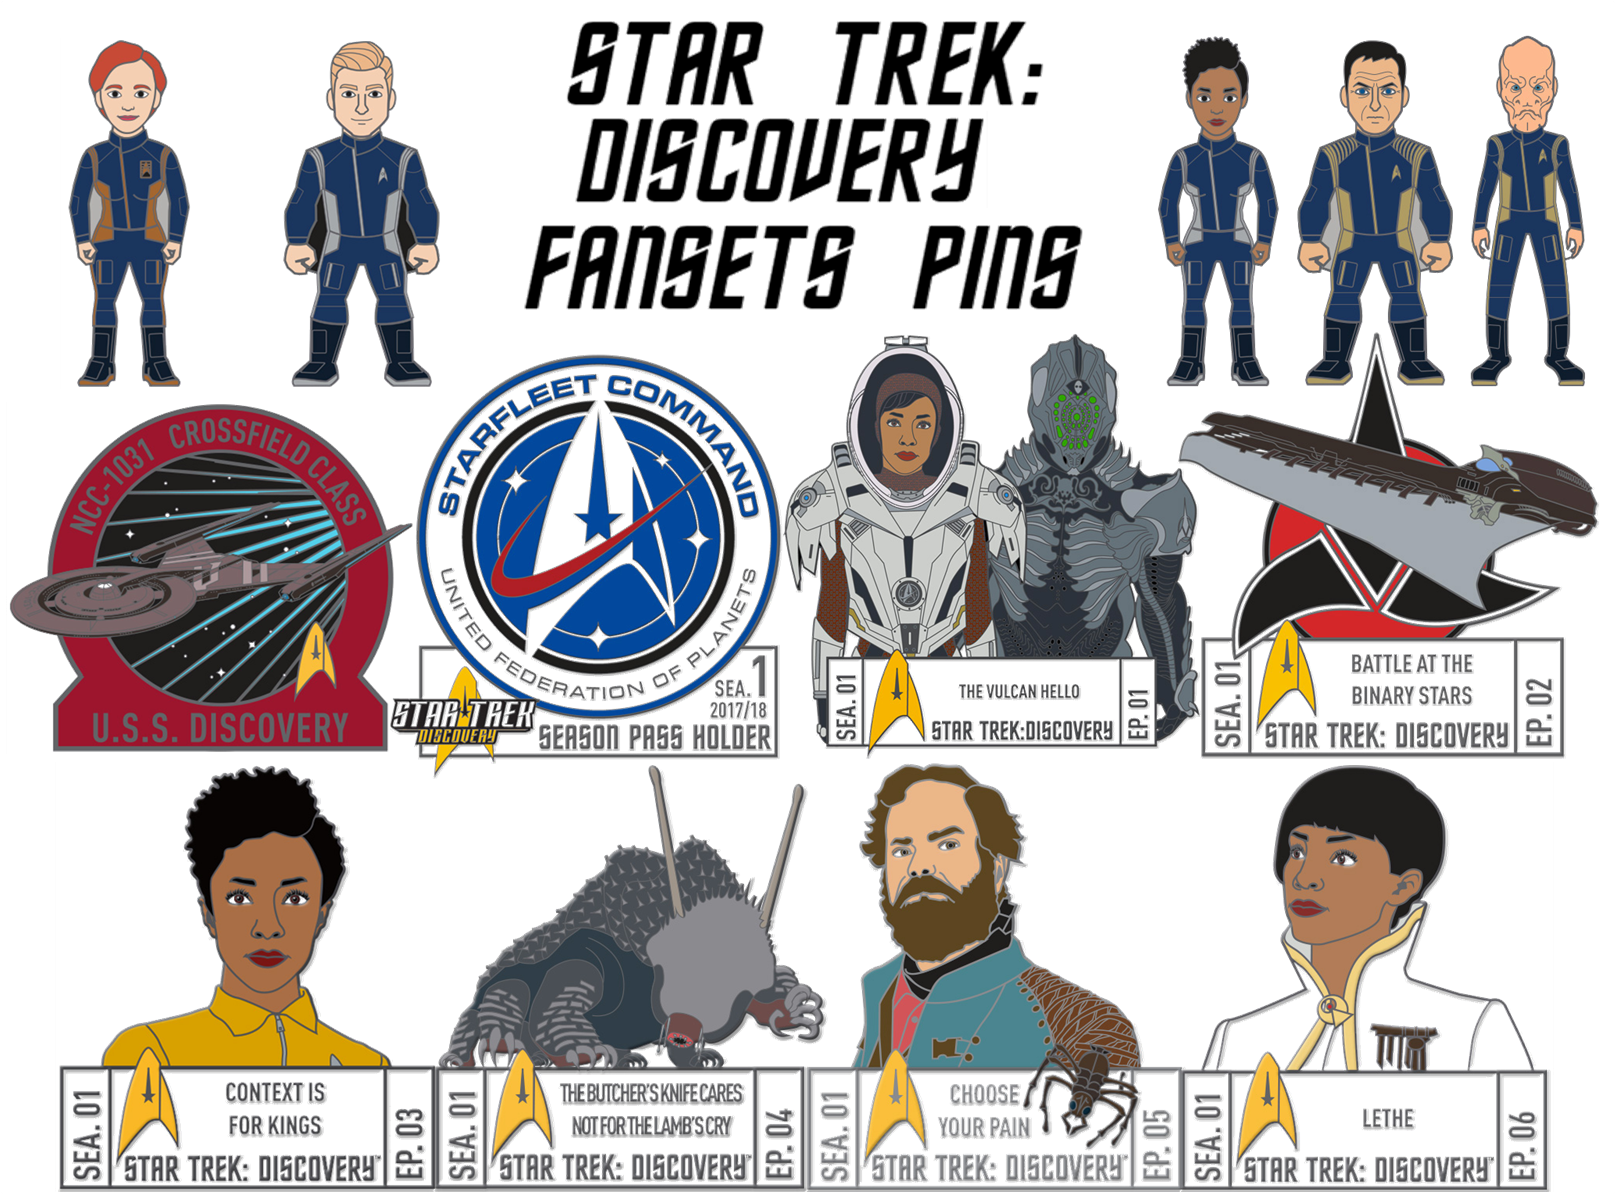 Star Trek Discovery Fansets Pins